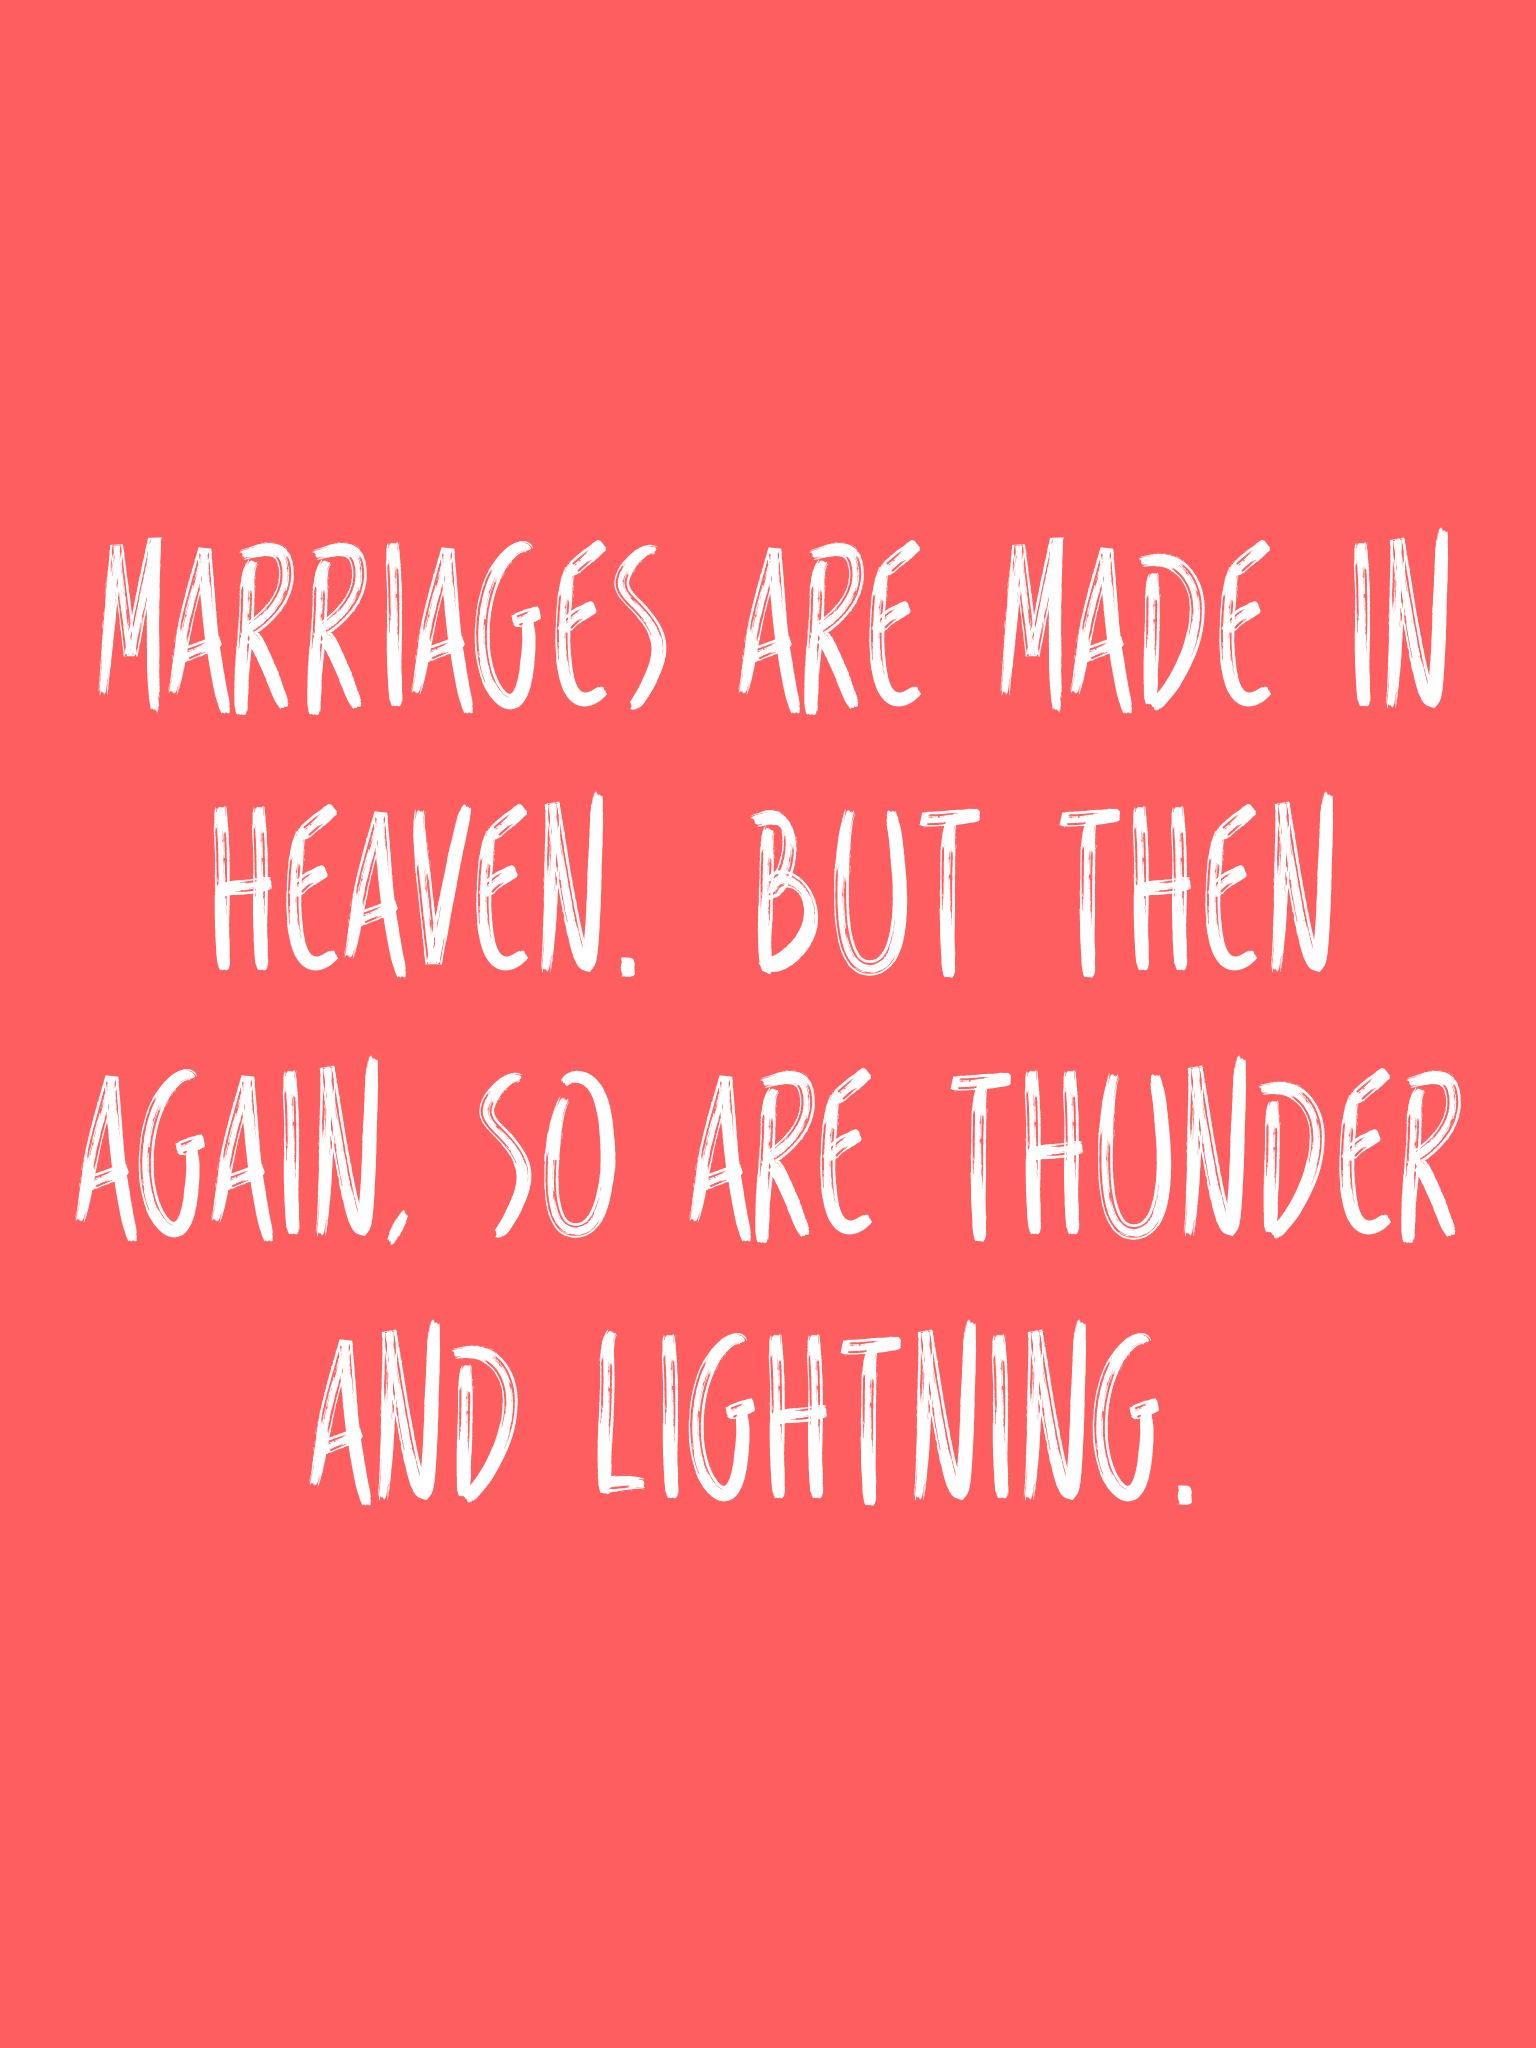 Love Quotes App Simple Marriages Are Made In Heavenbut Then Again So Are Thunder And